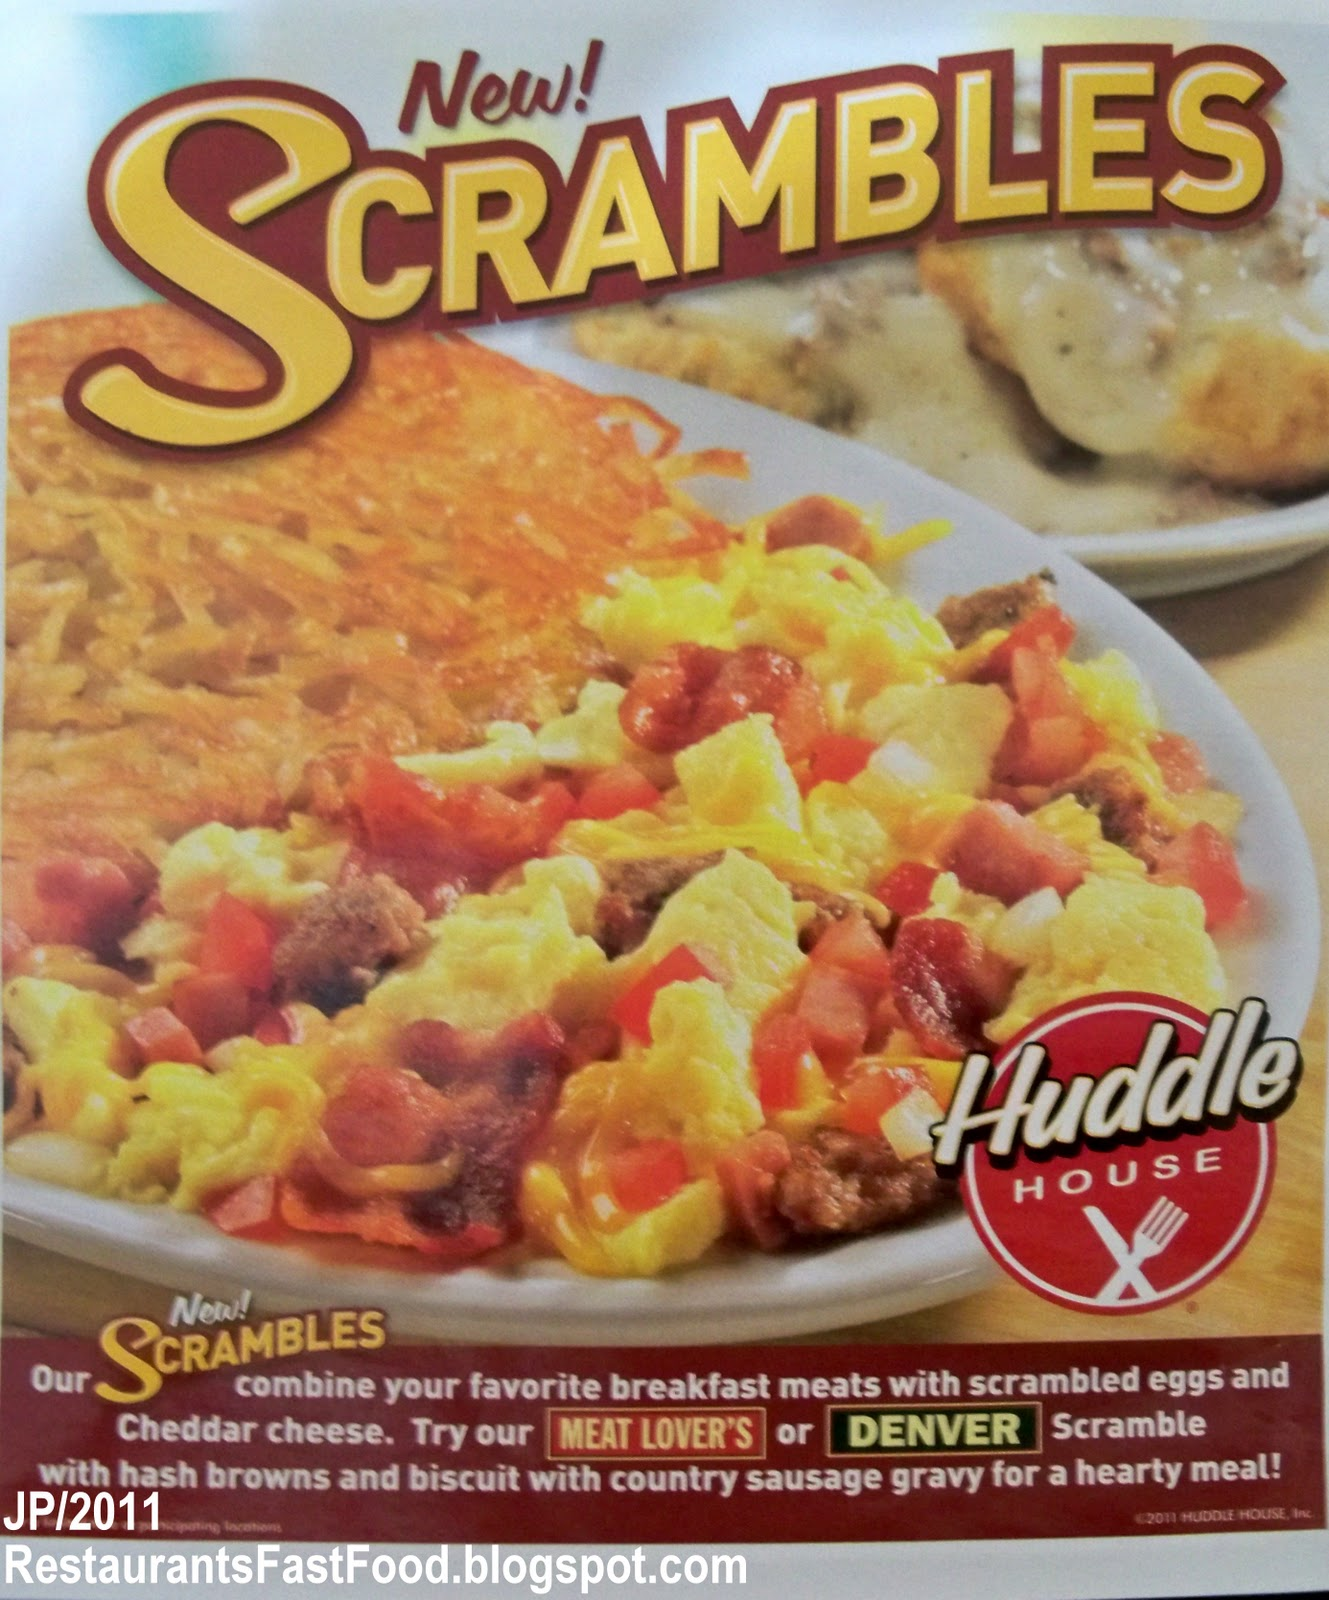 Is Huddle House Fast Food